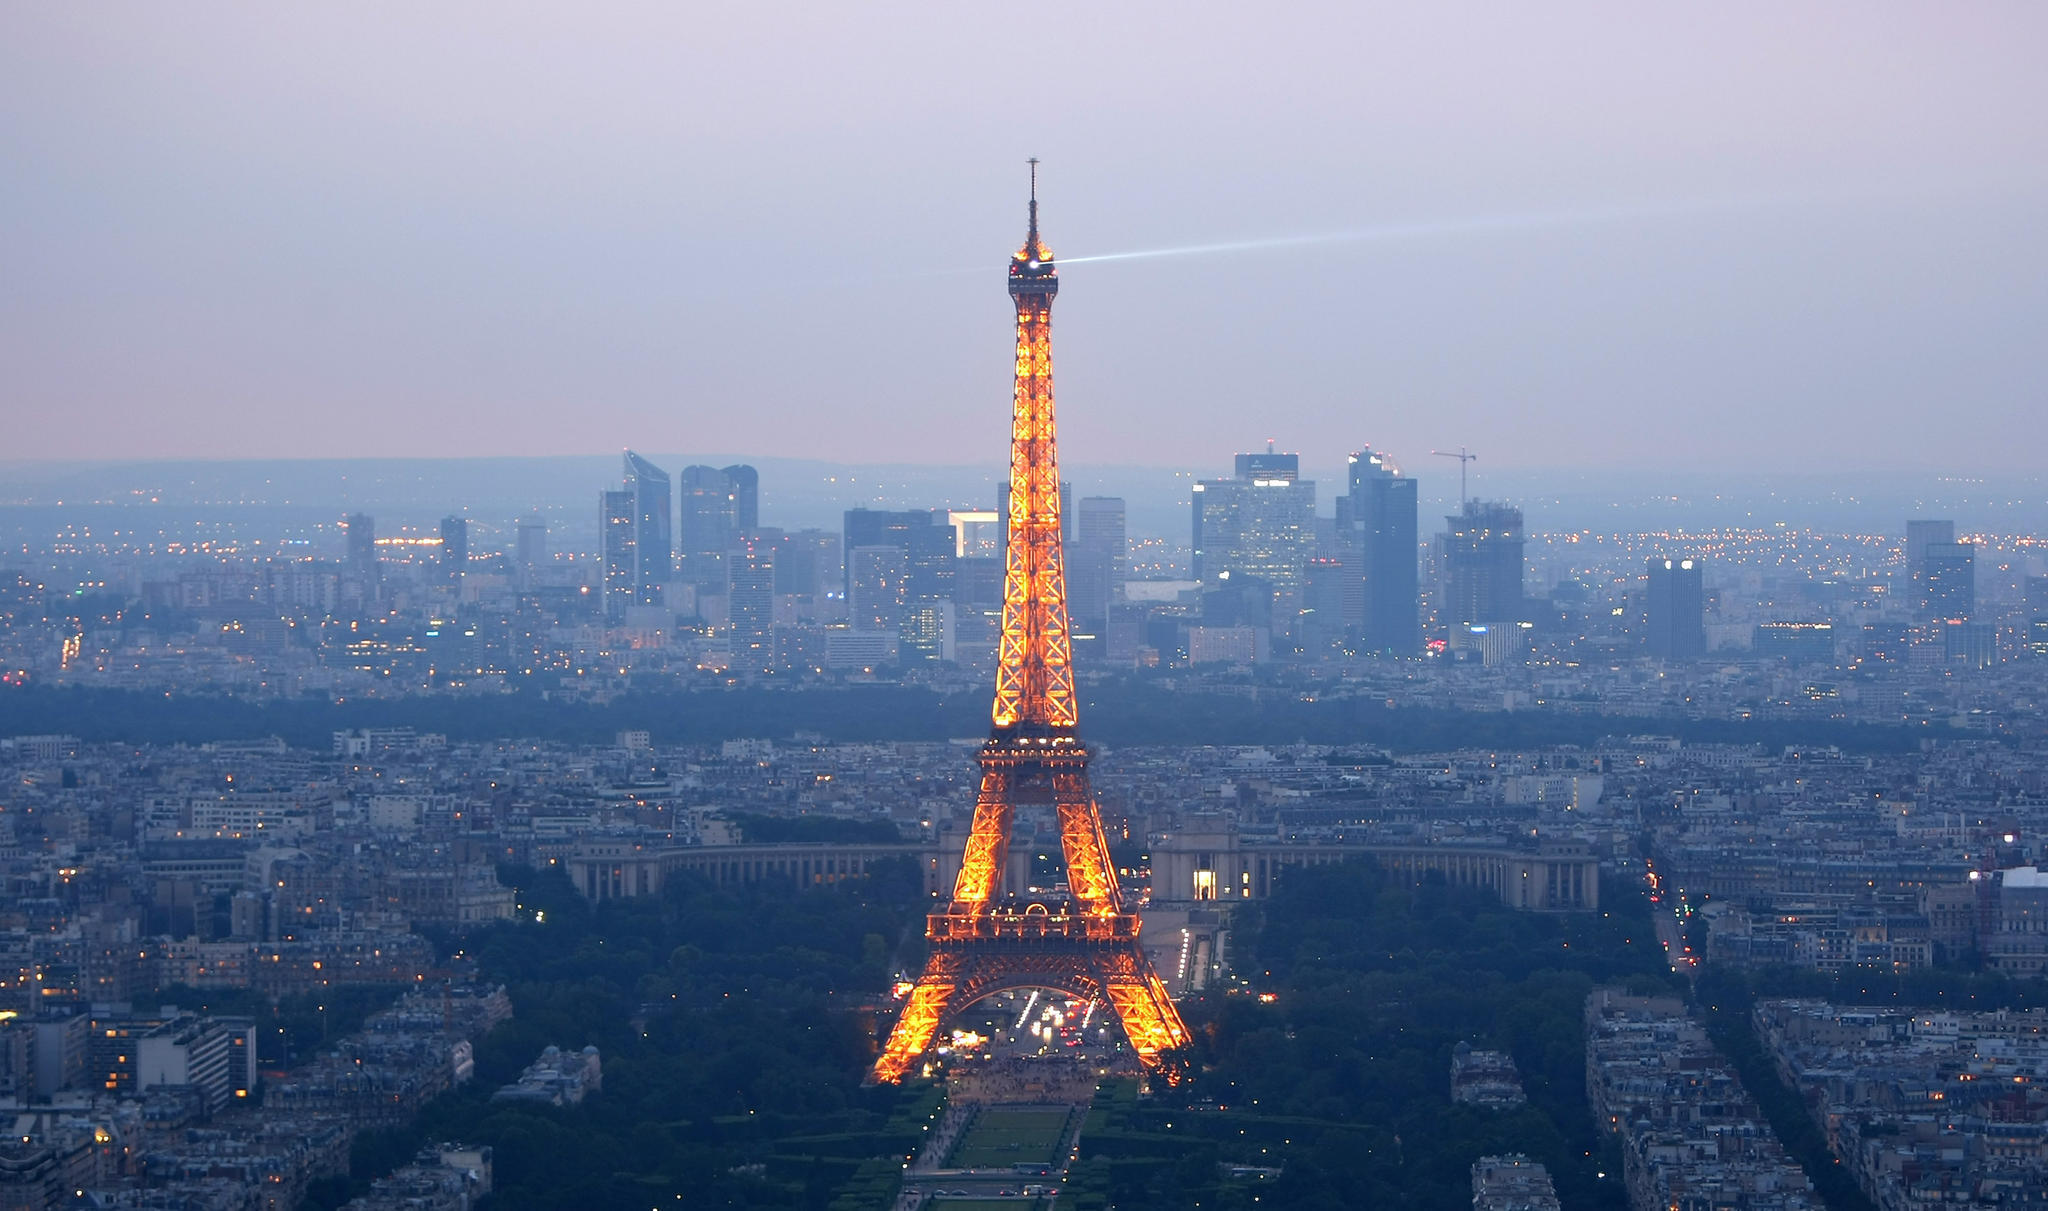 Der Eiffelturm in Paris